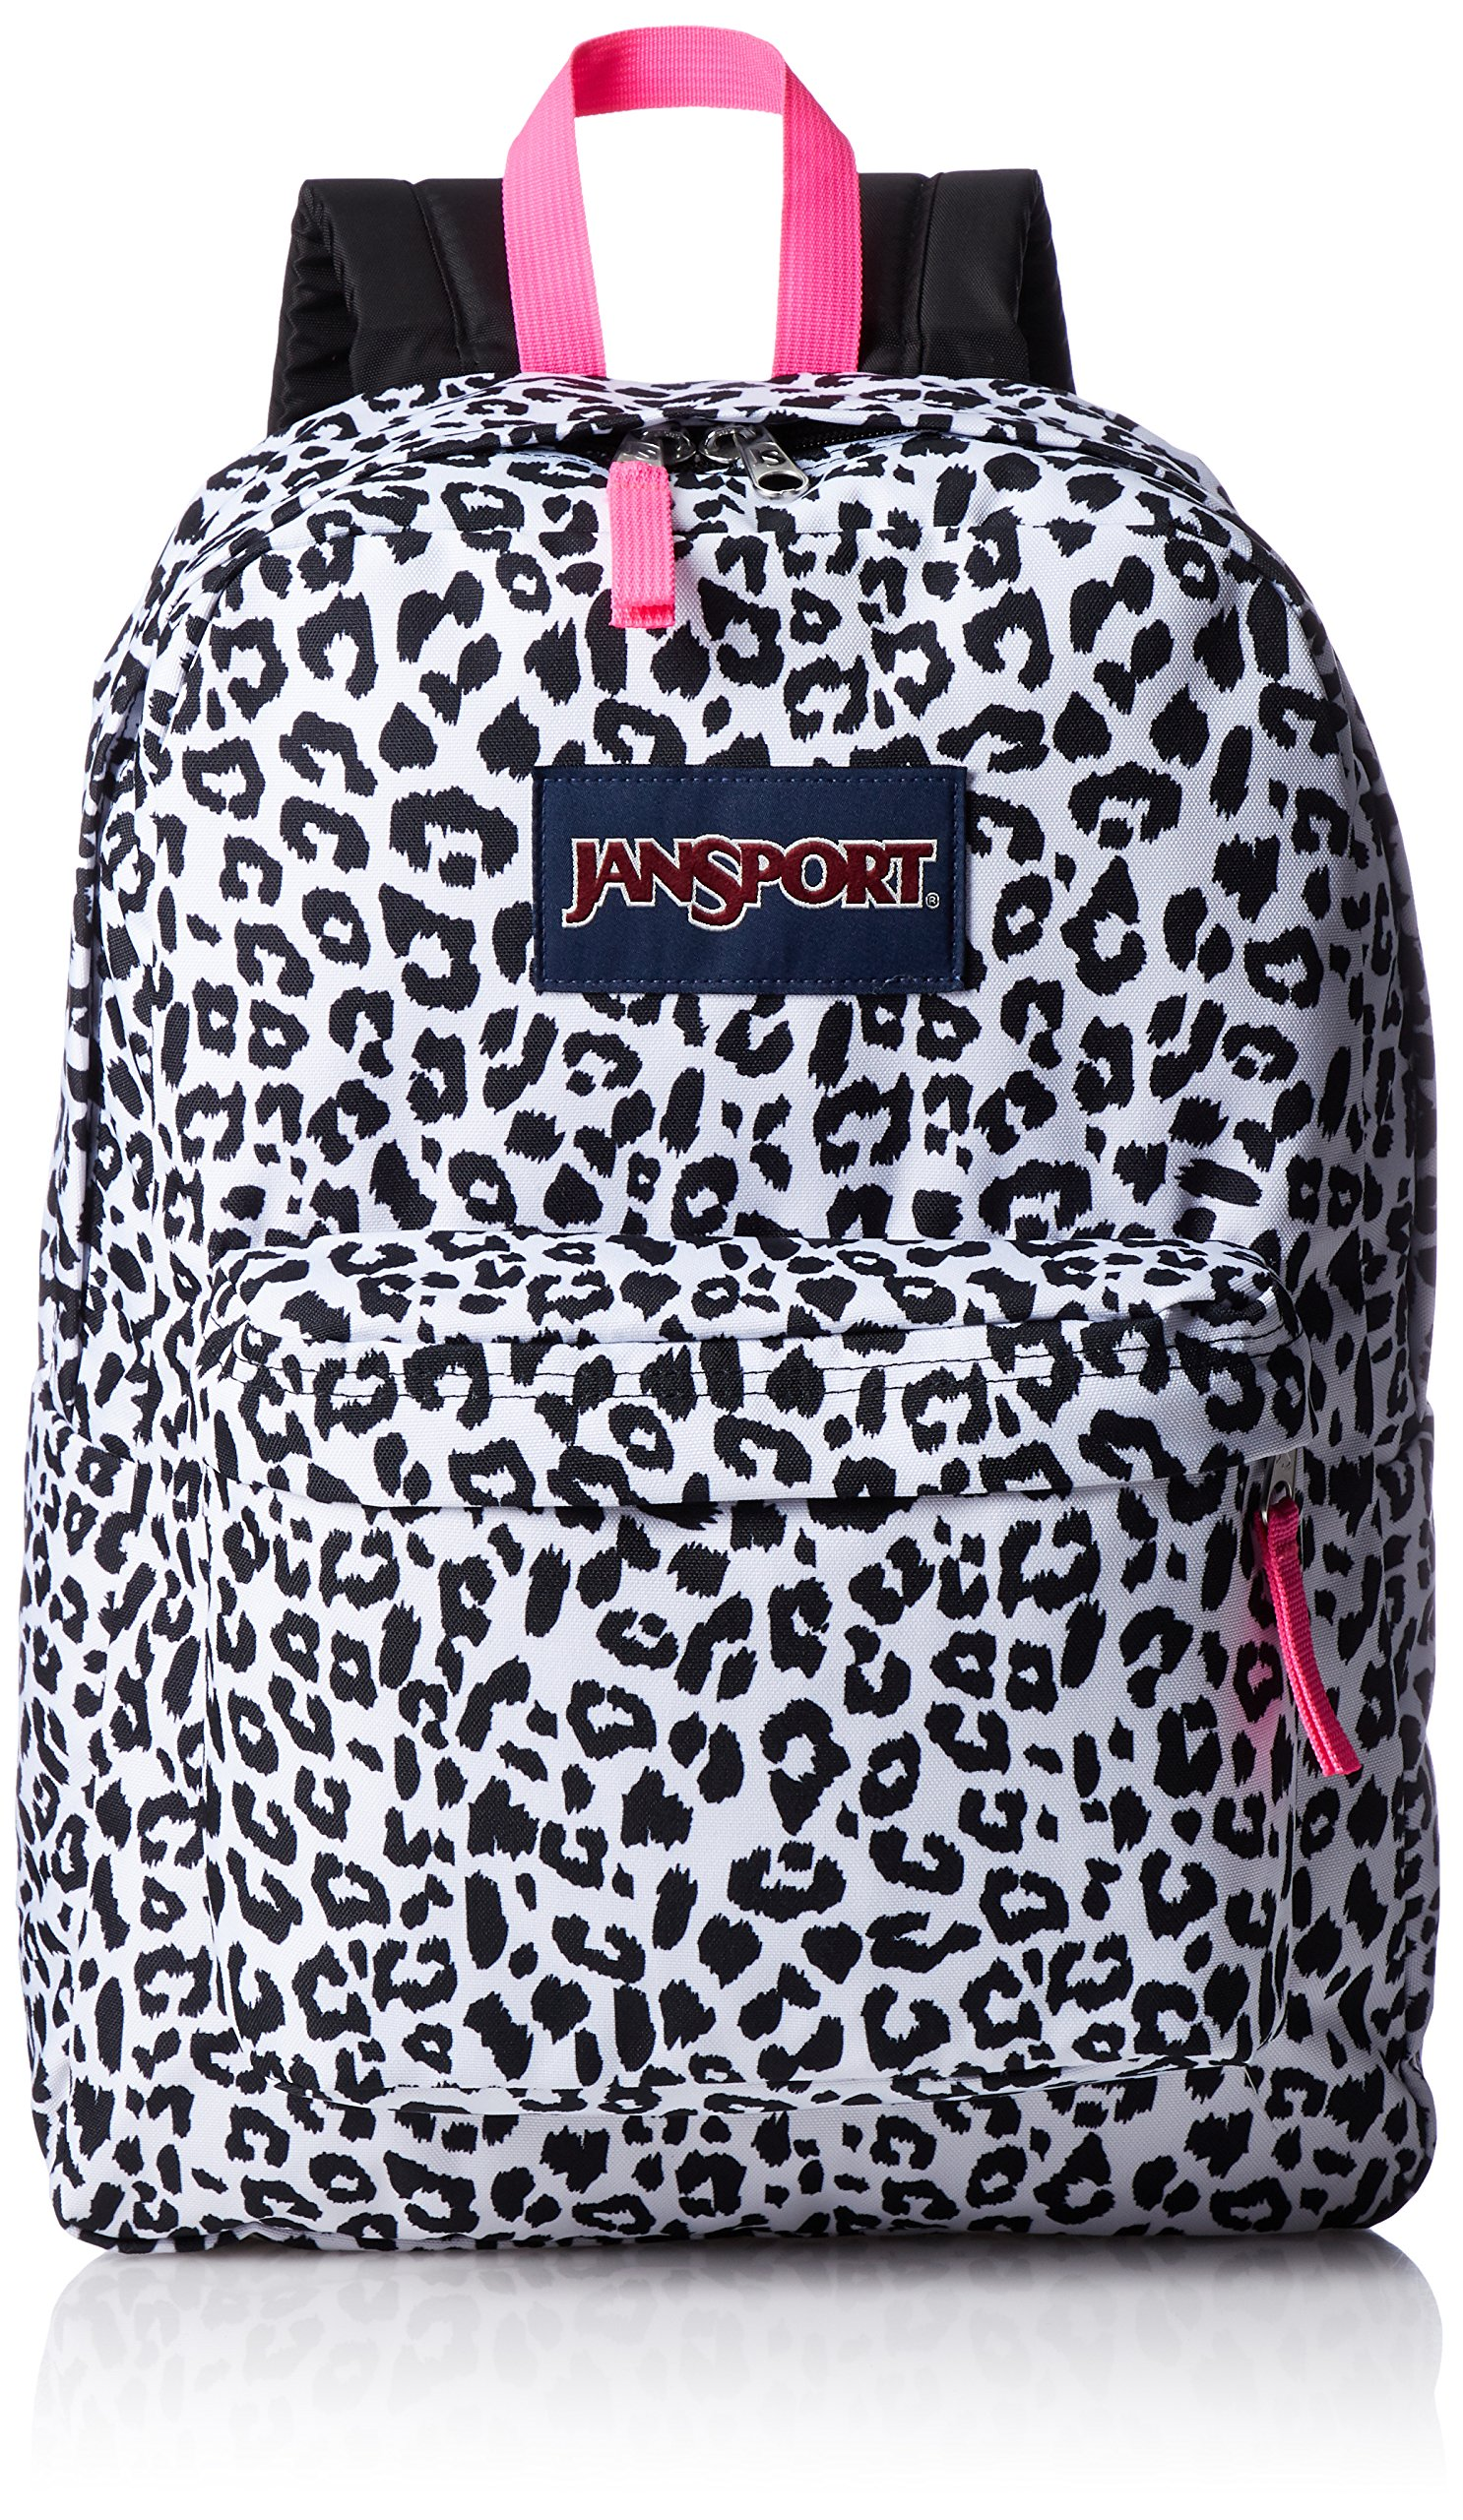 Small White Jansport Backpack- Fenix Toulouse Handball 85ec49f1cbabf